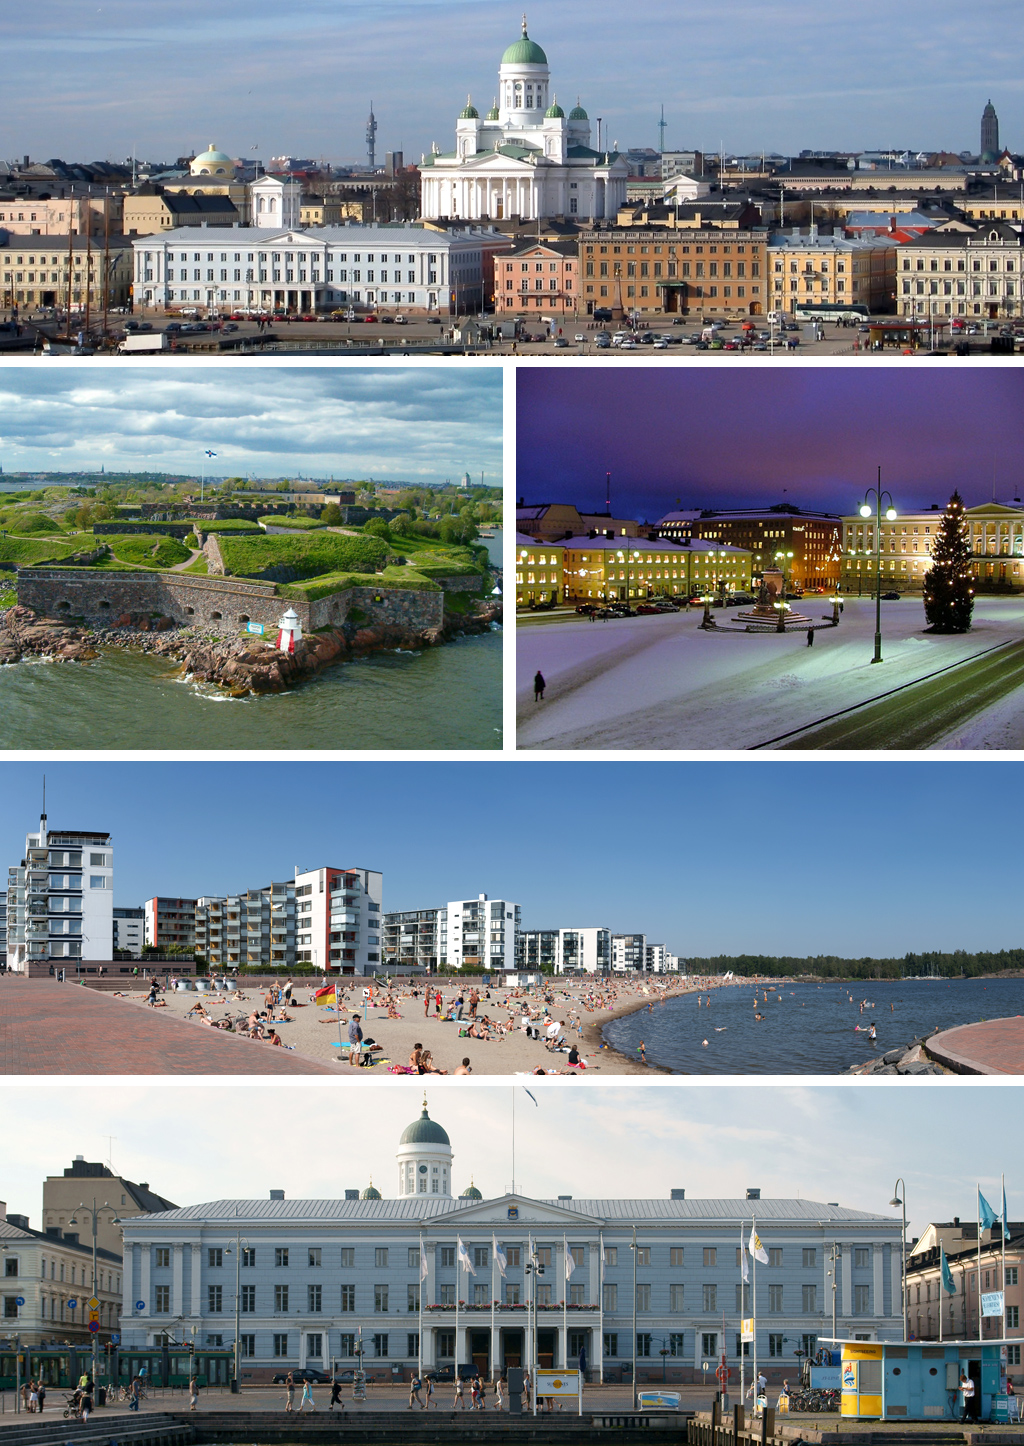 A postcard picture of many of the sights in Helsinki.